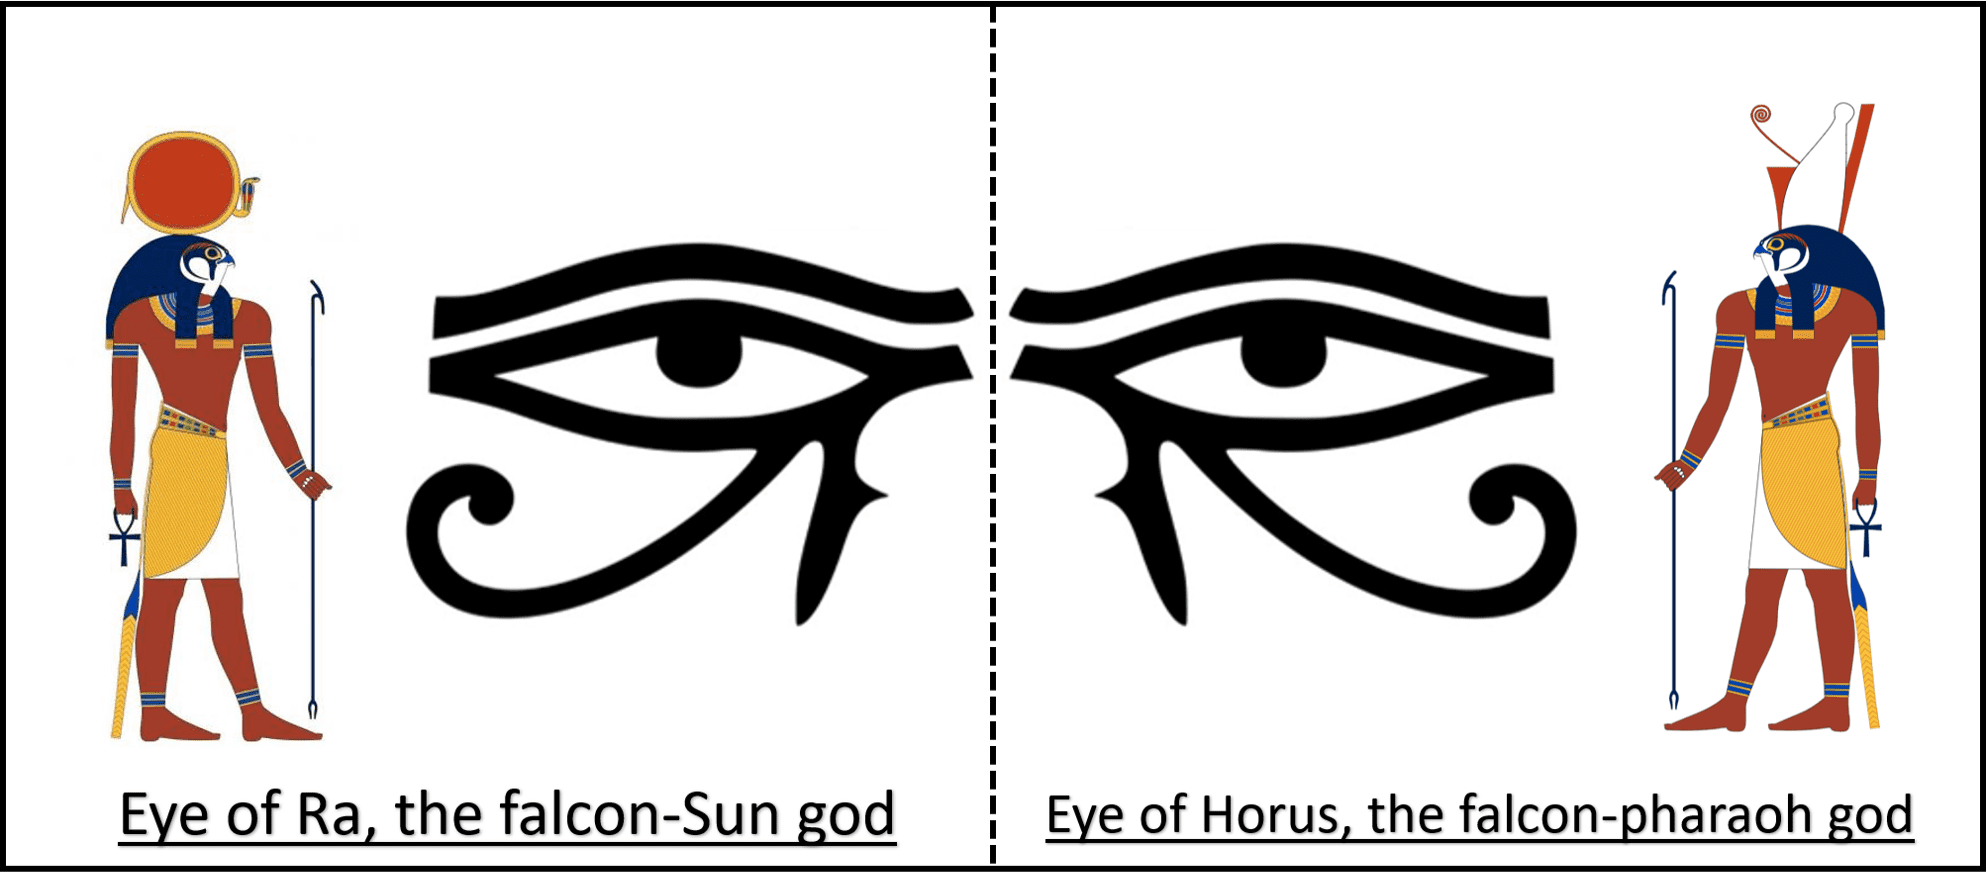 Difference between eye of Ra and eye of Horus